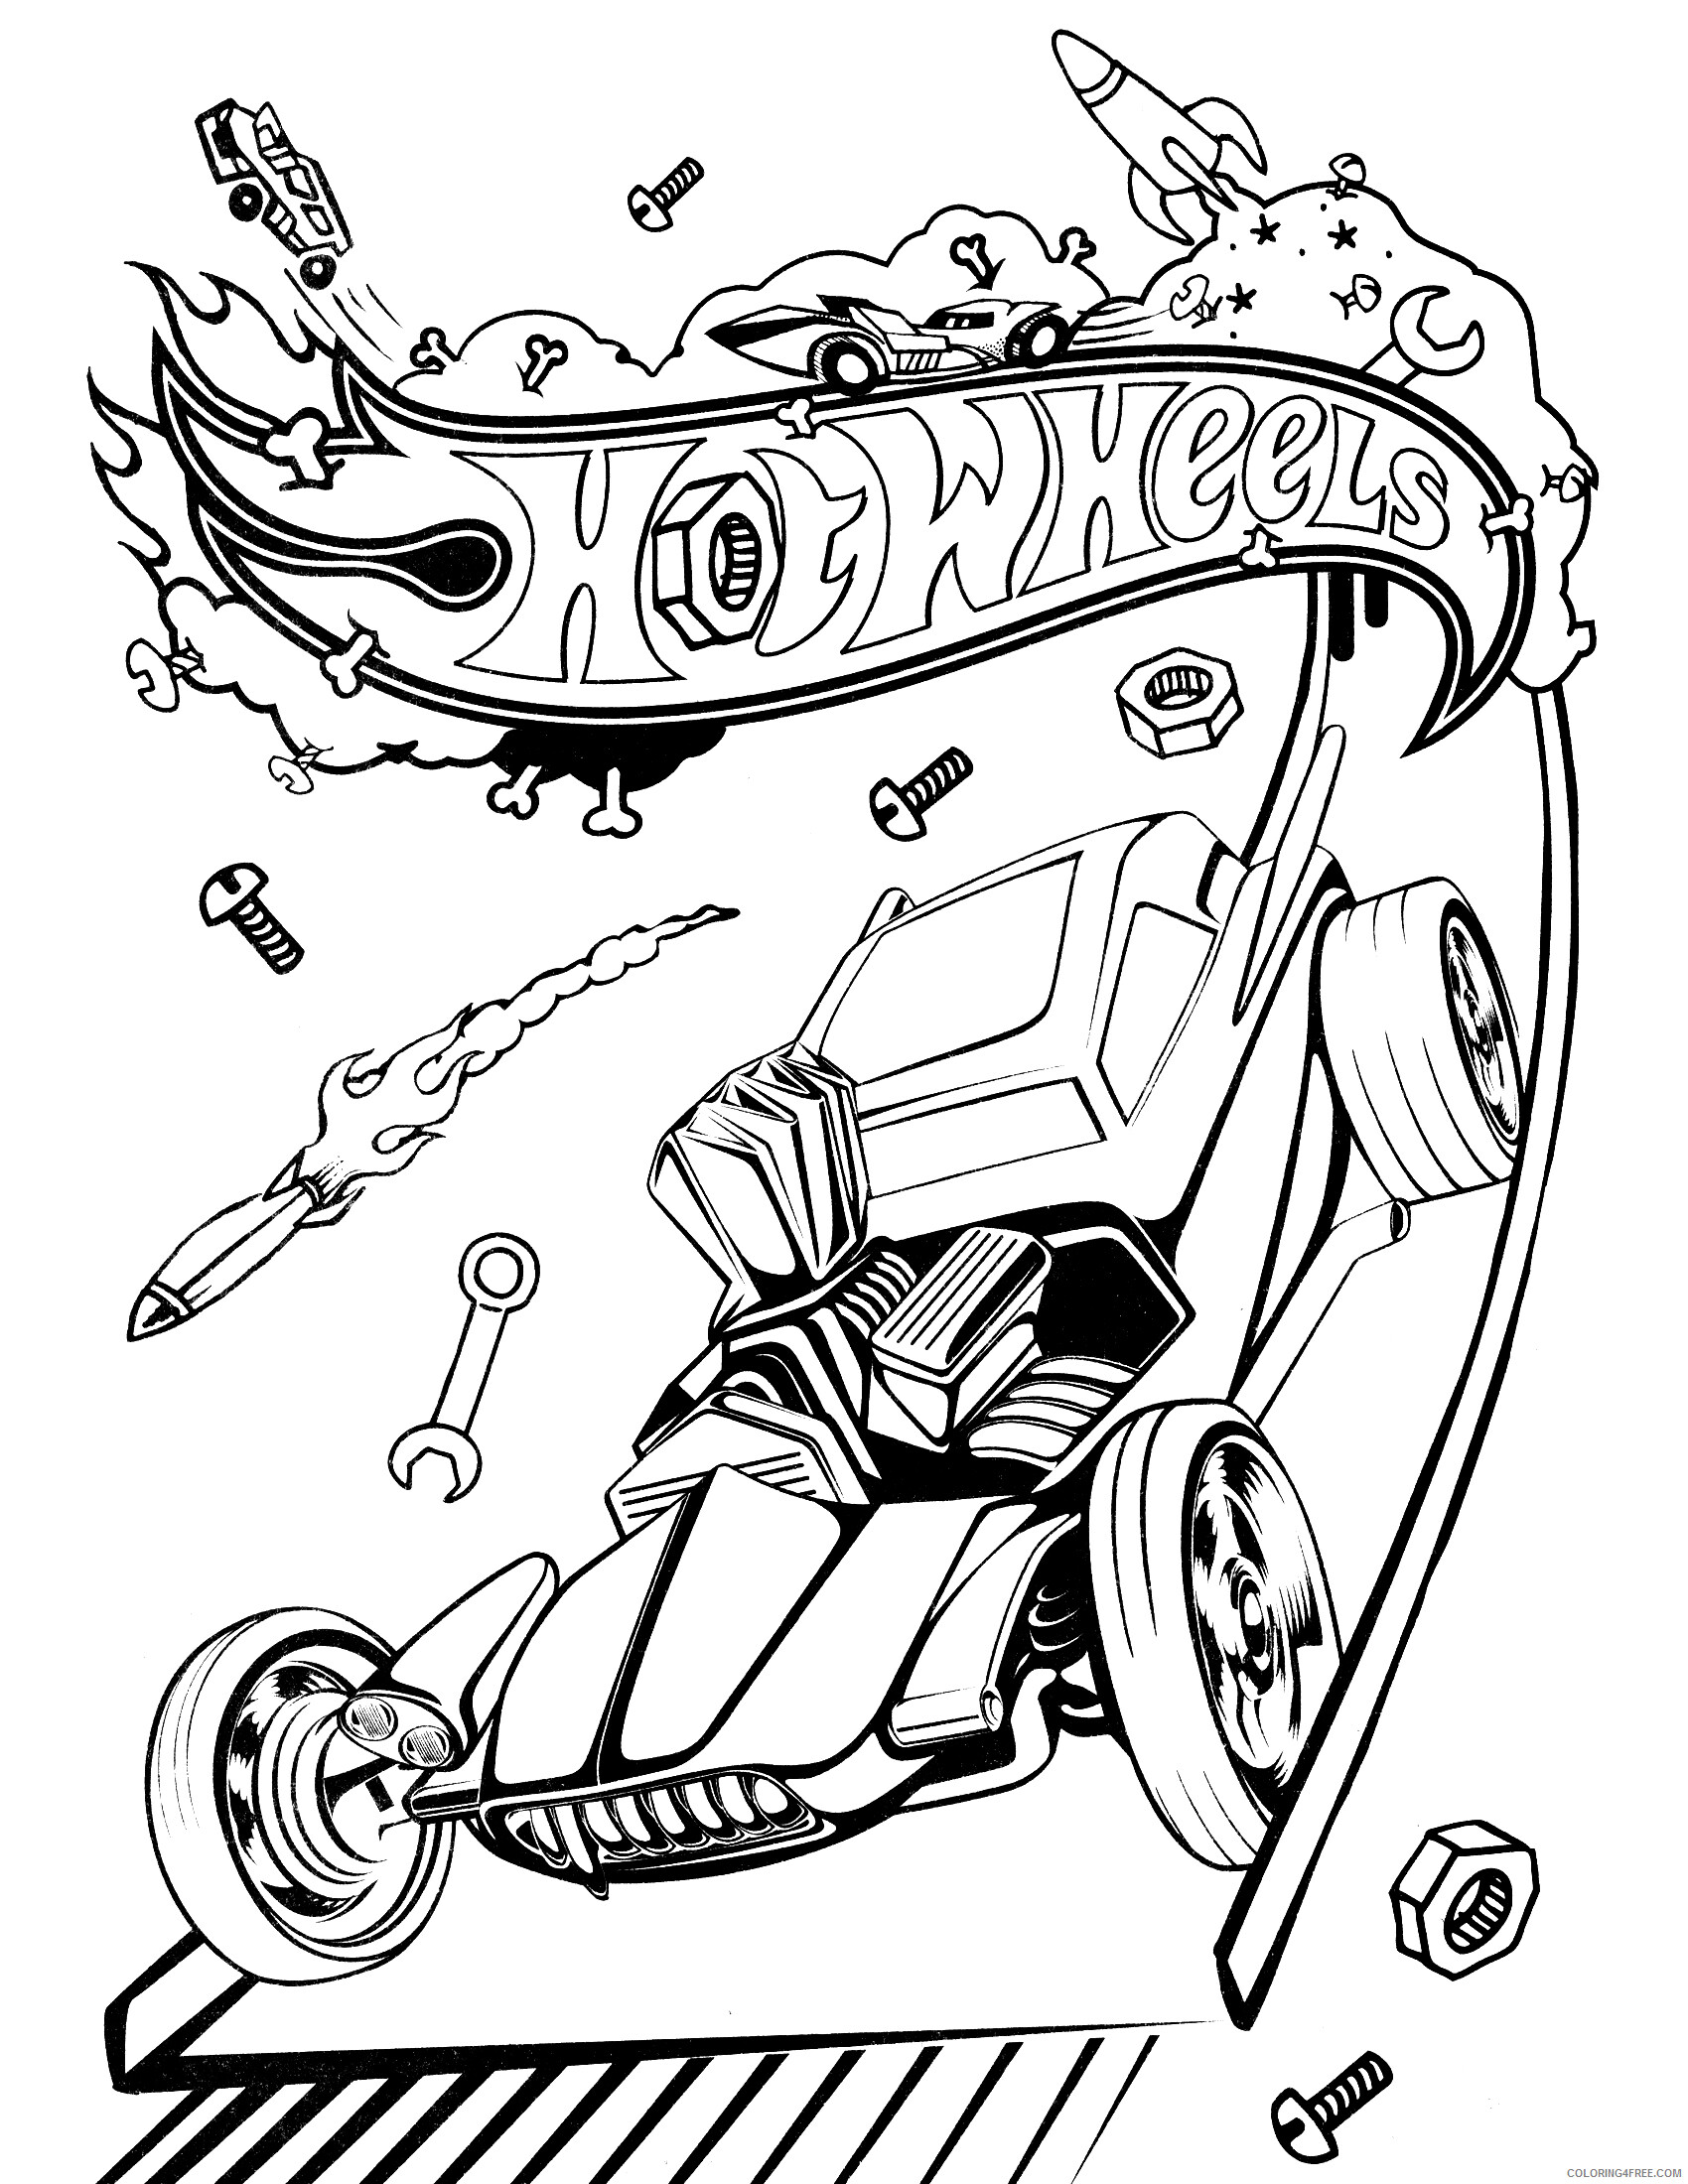 Hot Wheels Coloring Pages Hot Wheel Printable 2021 3357 Coloring4free